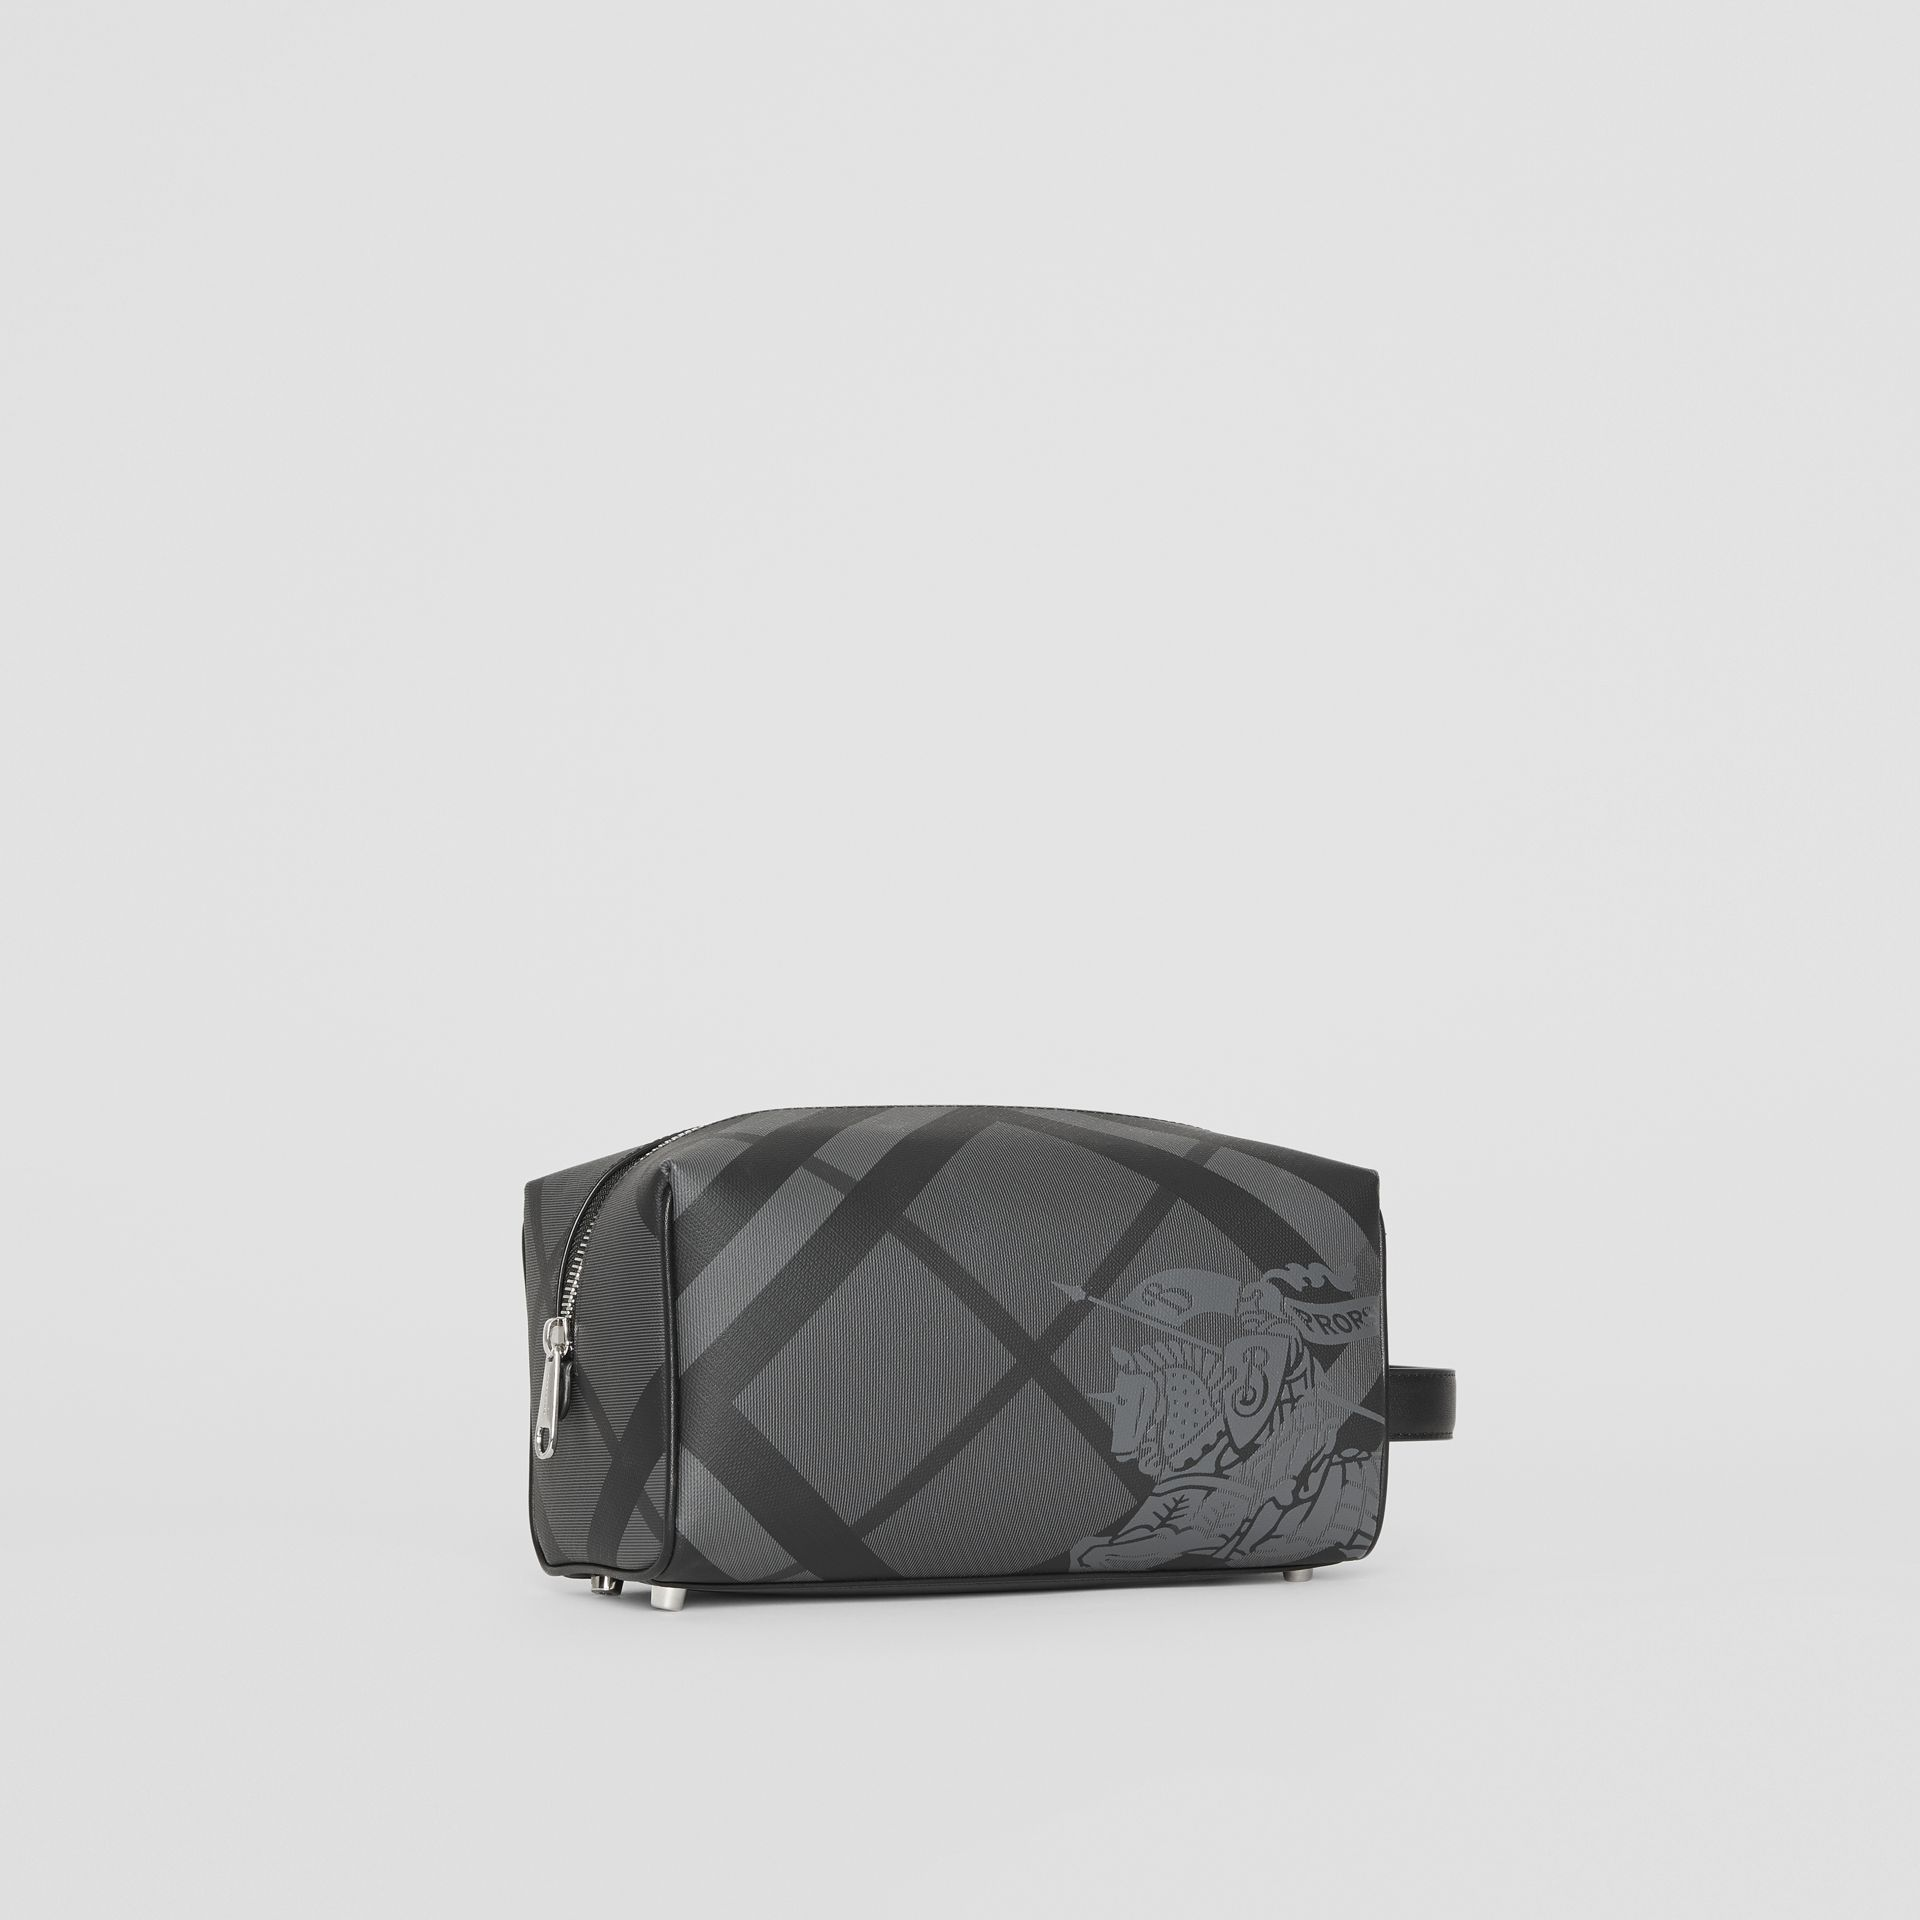 EKD London Check and Leather Pouch in Charcoal/black - Men | Burberry - gallery image 6